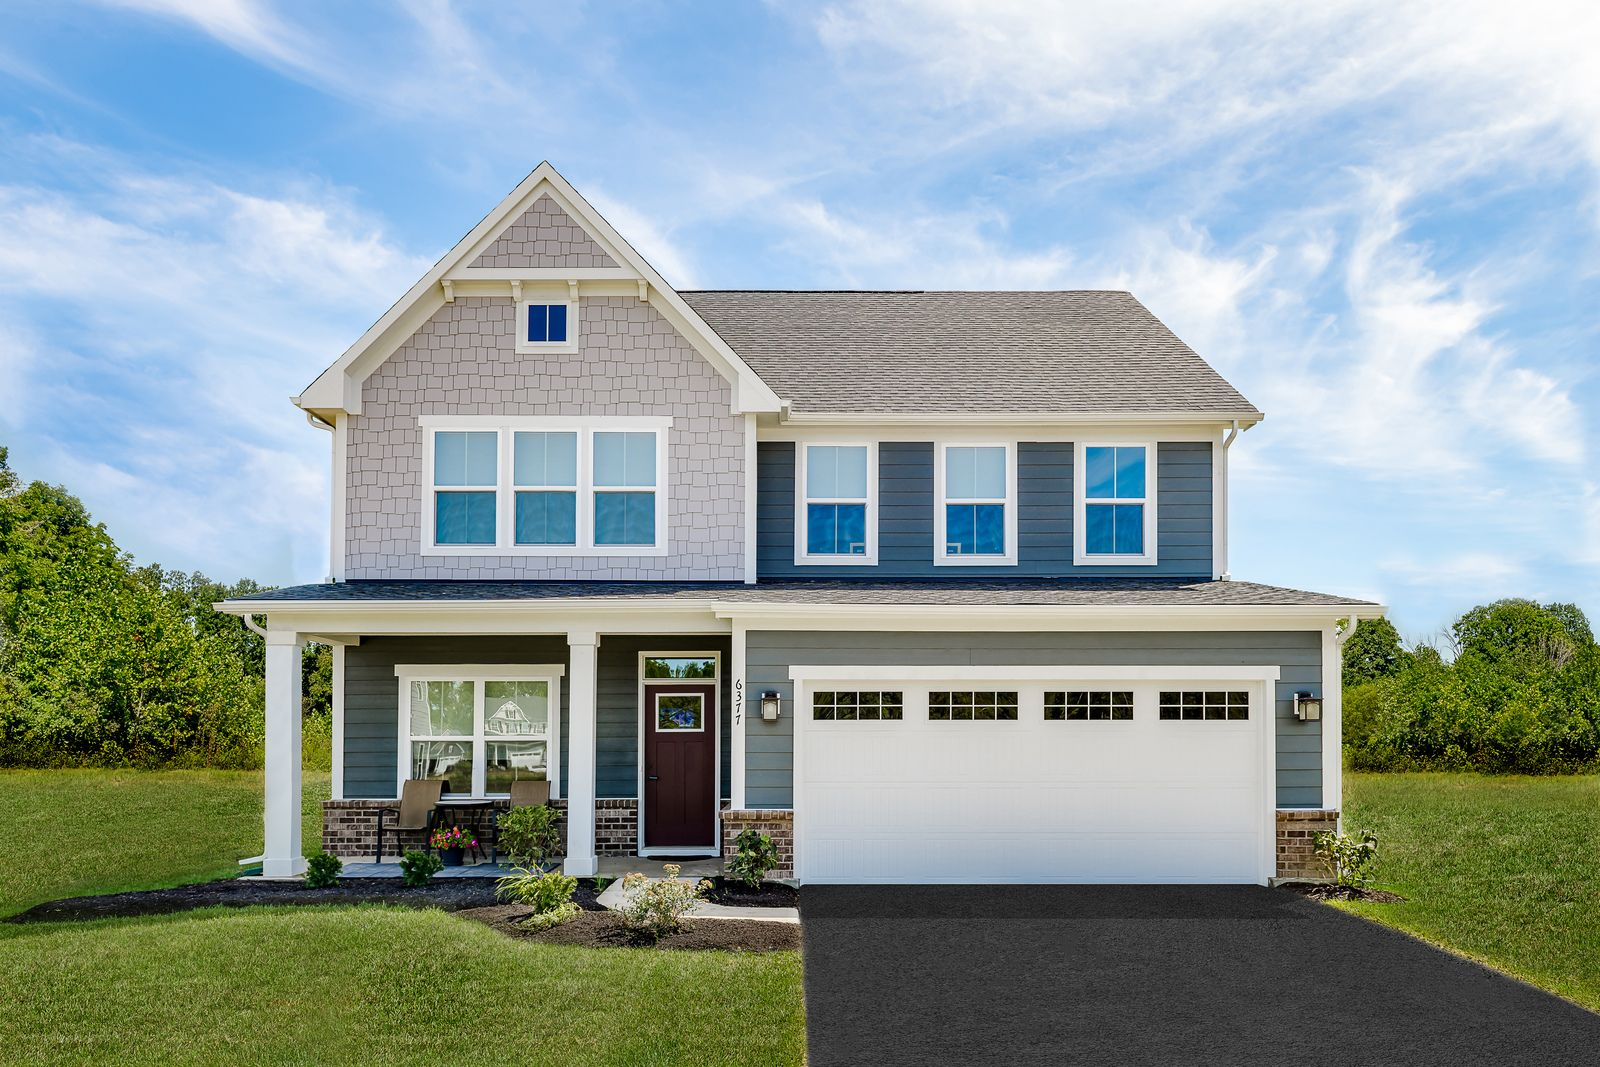 Welcome Home to Lehrwood Estates:The lowest priced new homes in the Penfield Central School District. Only 3 miles to the 250/441 intersection.Click hereto schedule your appointment.